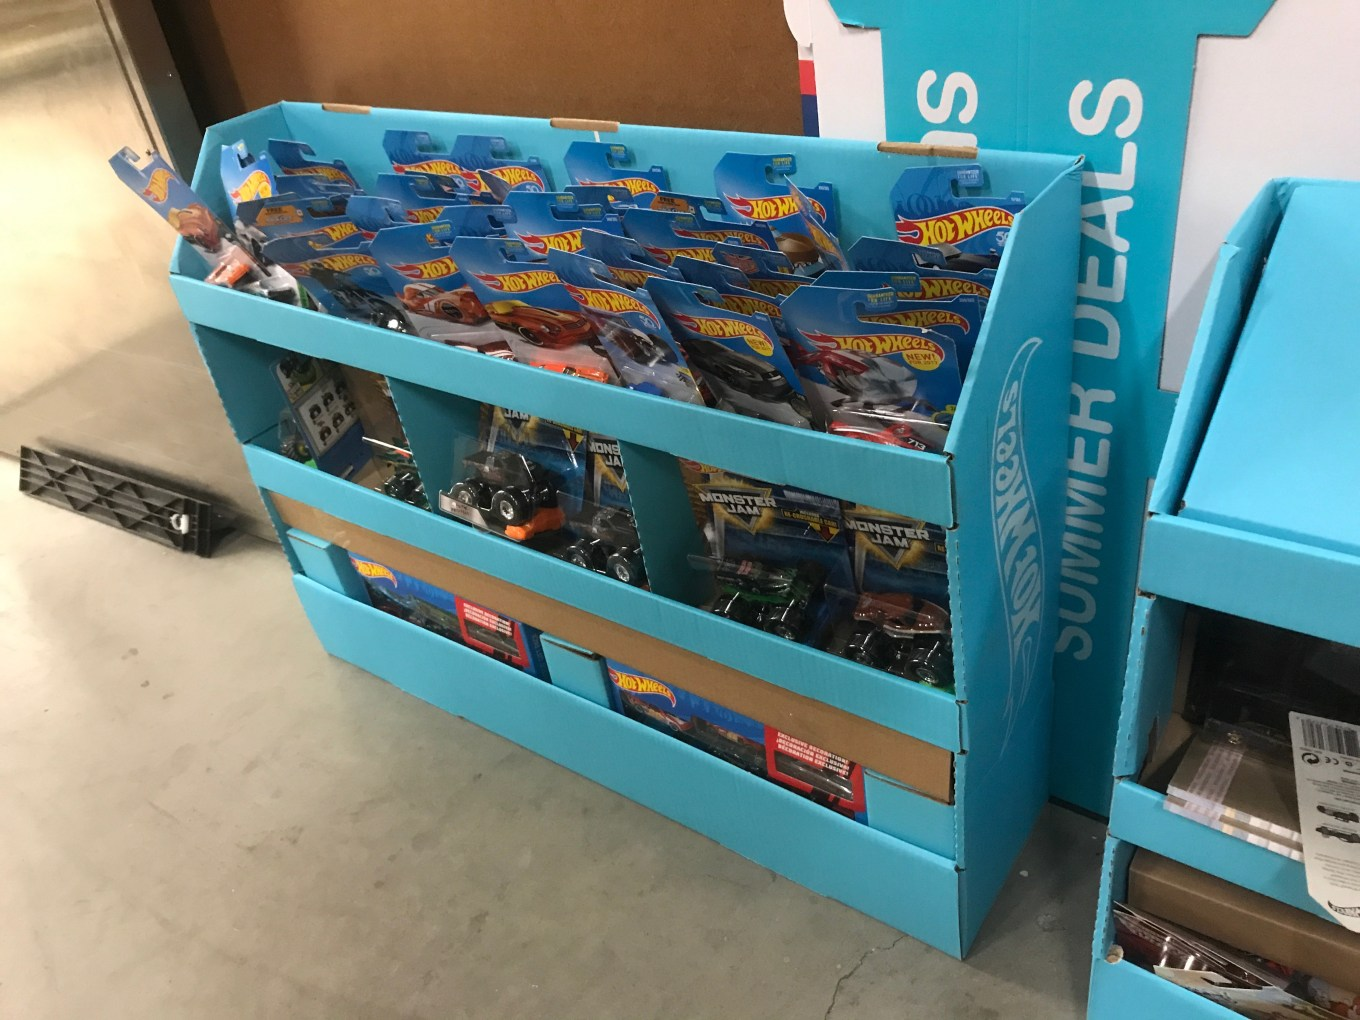 Time to head to walgreens: hot wheels 50th anniversary shippers are